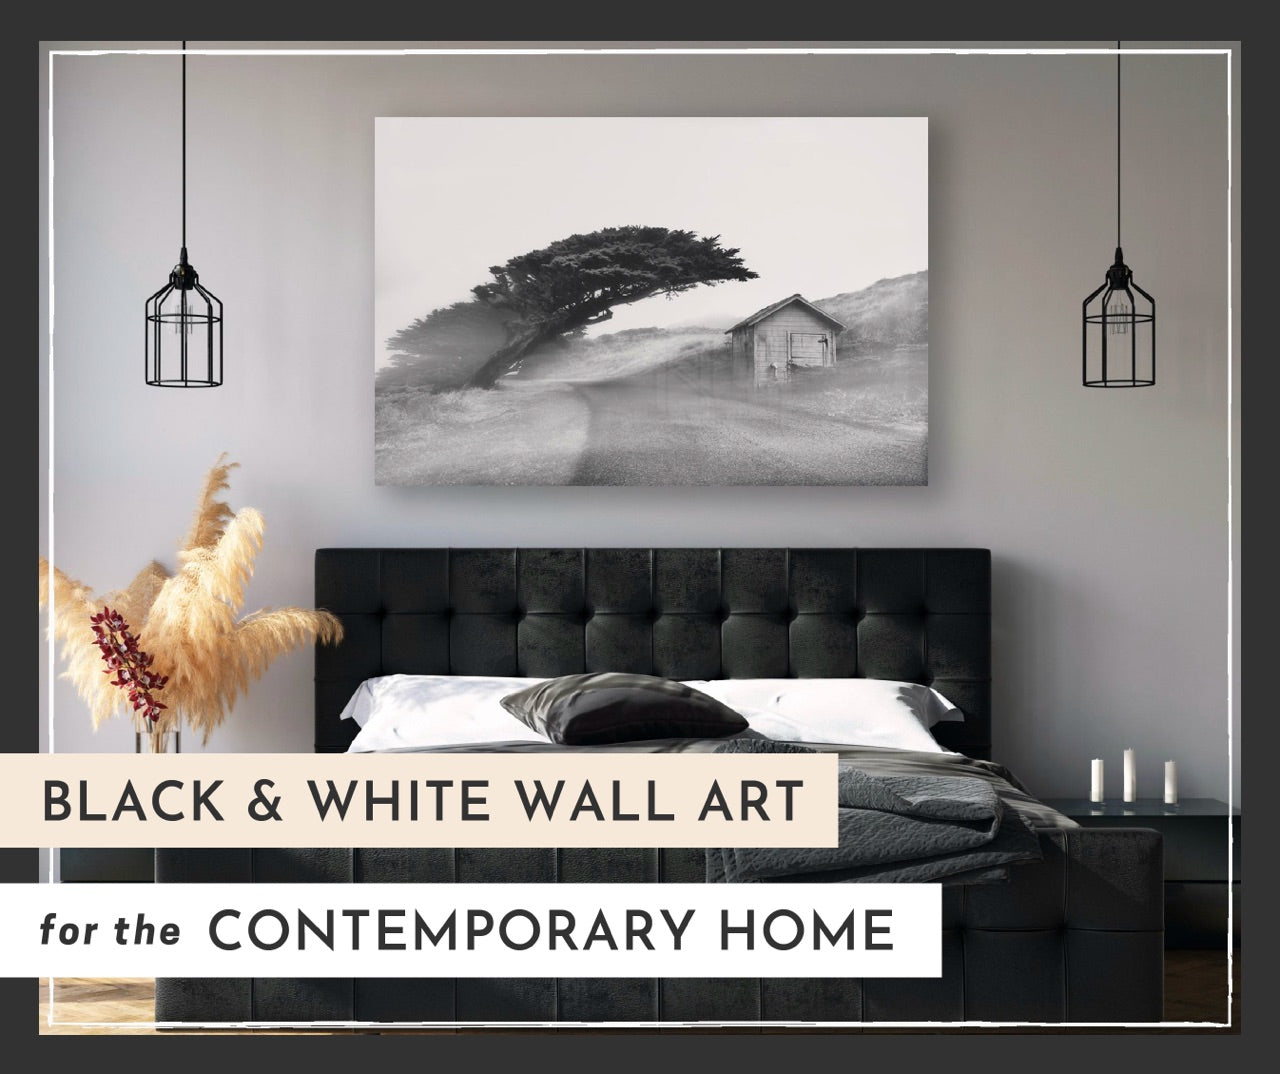 Black and White Wall Art for the Contemporary Home